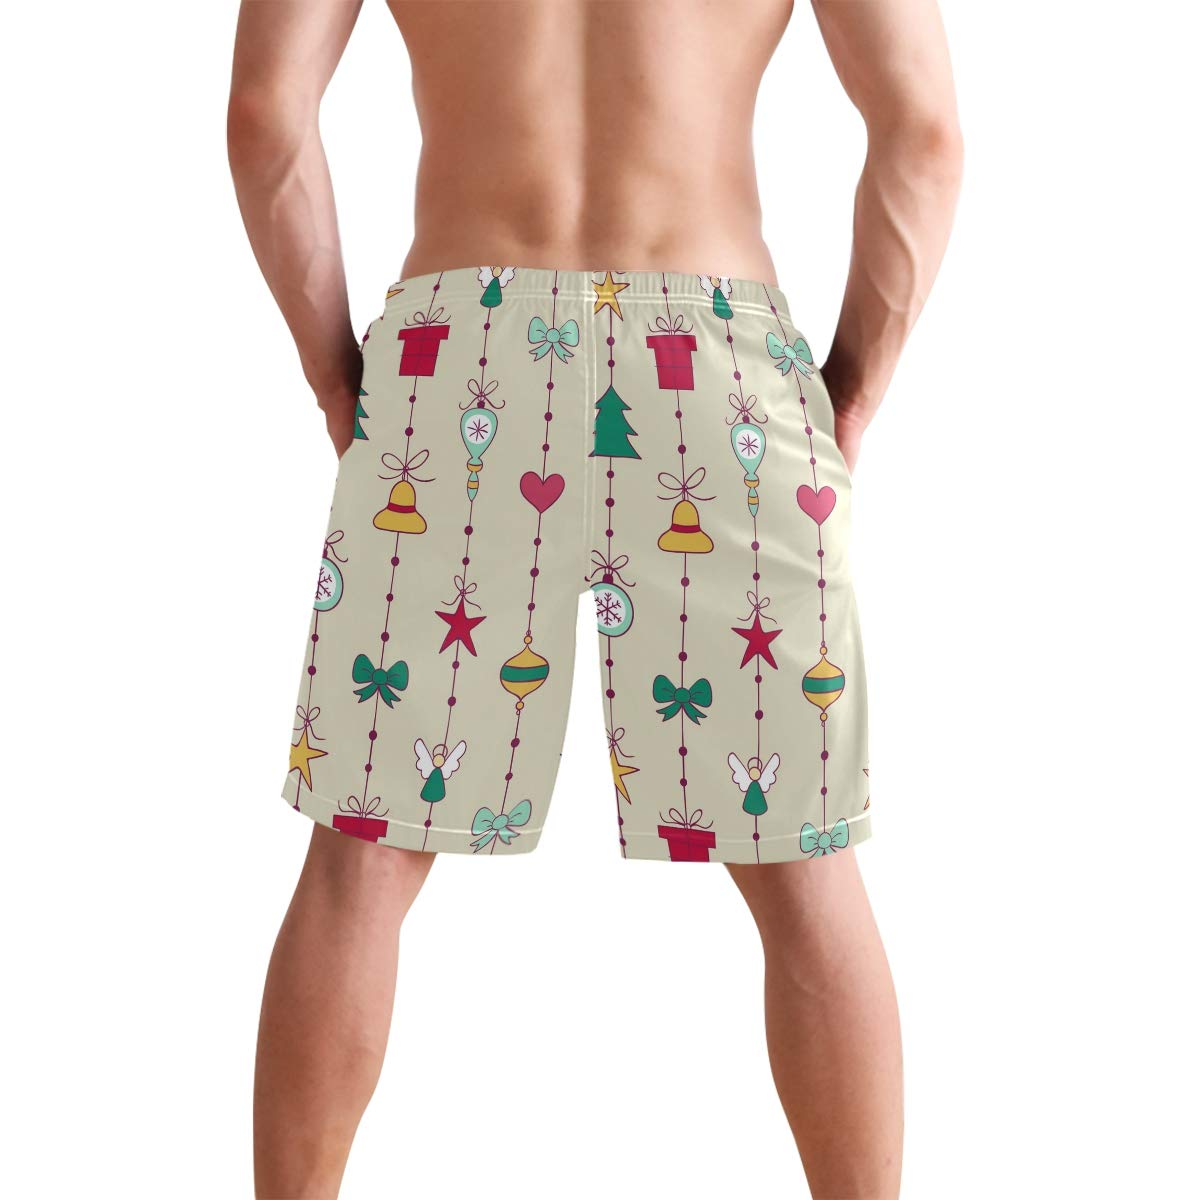 JECERY Mens Swim Trunks Vintage Christmas Angle Bell Tree Quick Dry Board Shorts with Drawstring and Pockets